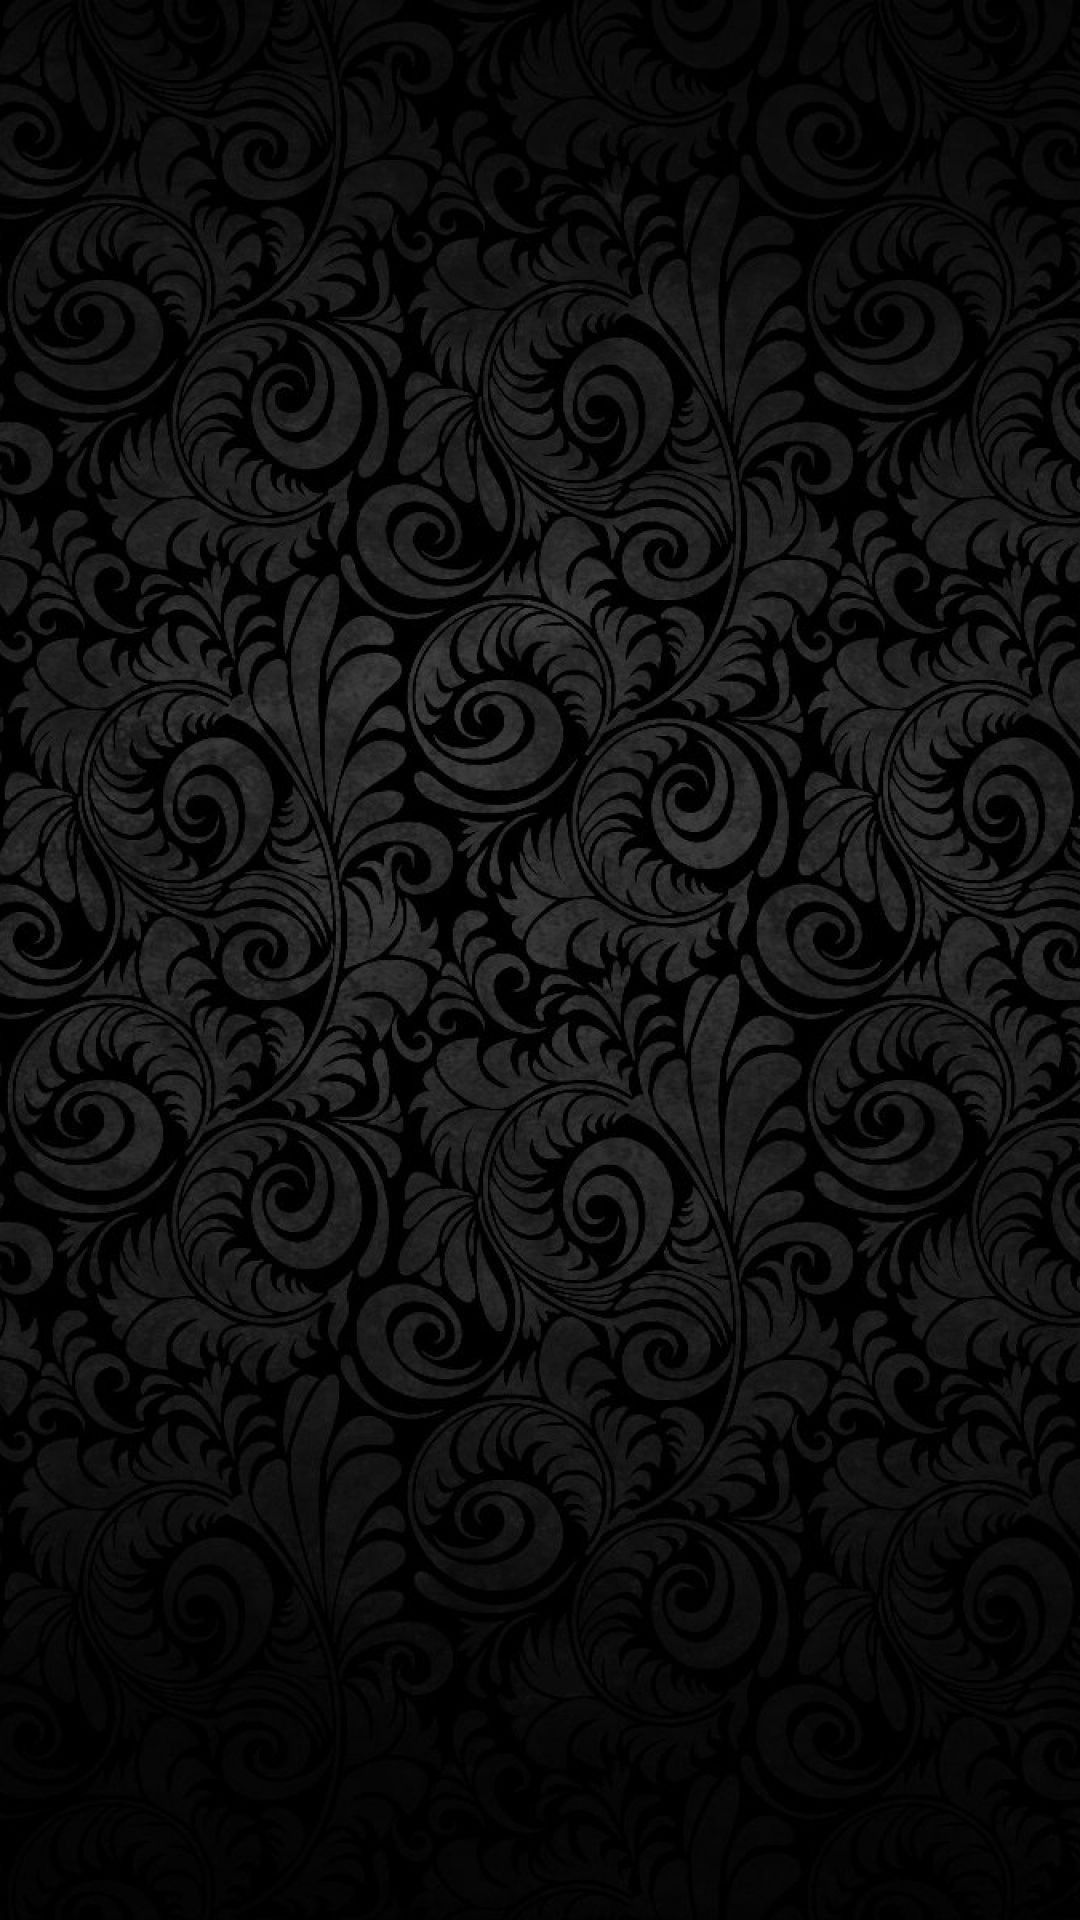 Iphone 6 Plus Android Iphone Desktop Hd Backgrounds Wallpapers 1080p 4k 119545 Dark Phone Wallpapers Lace Iphone Wallpaper Gold Wallpaper Android Dark hd wallpapers for iphone 6 1080p